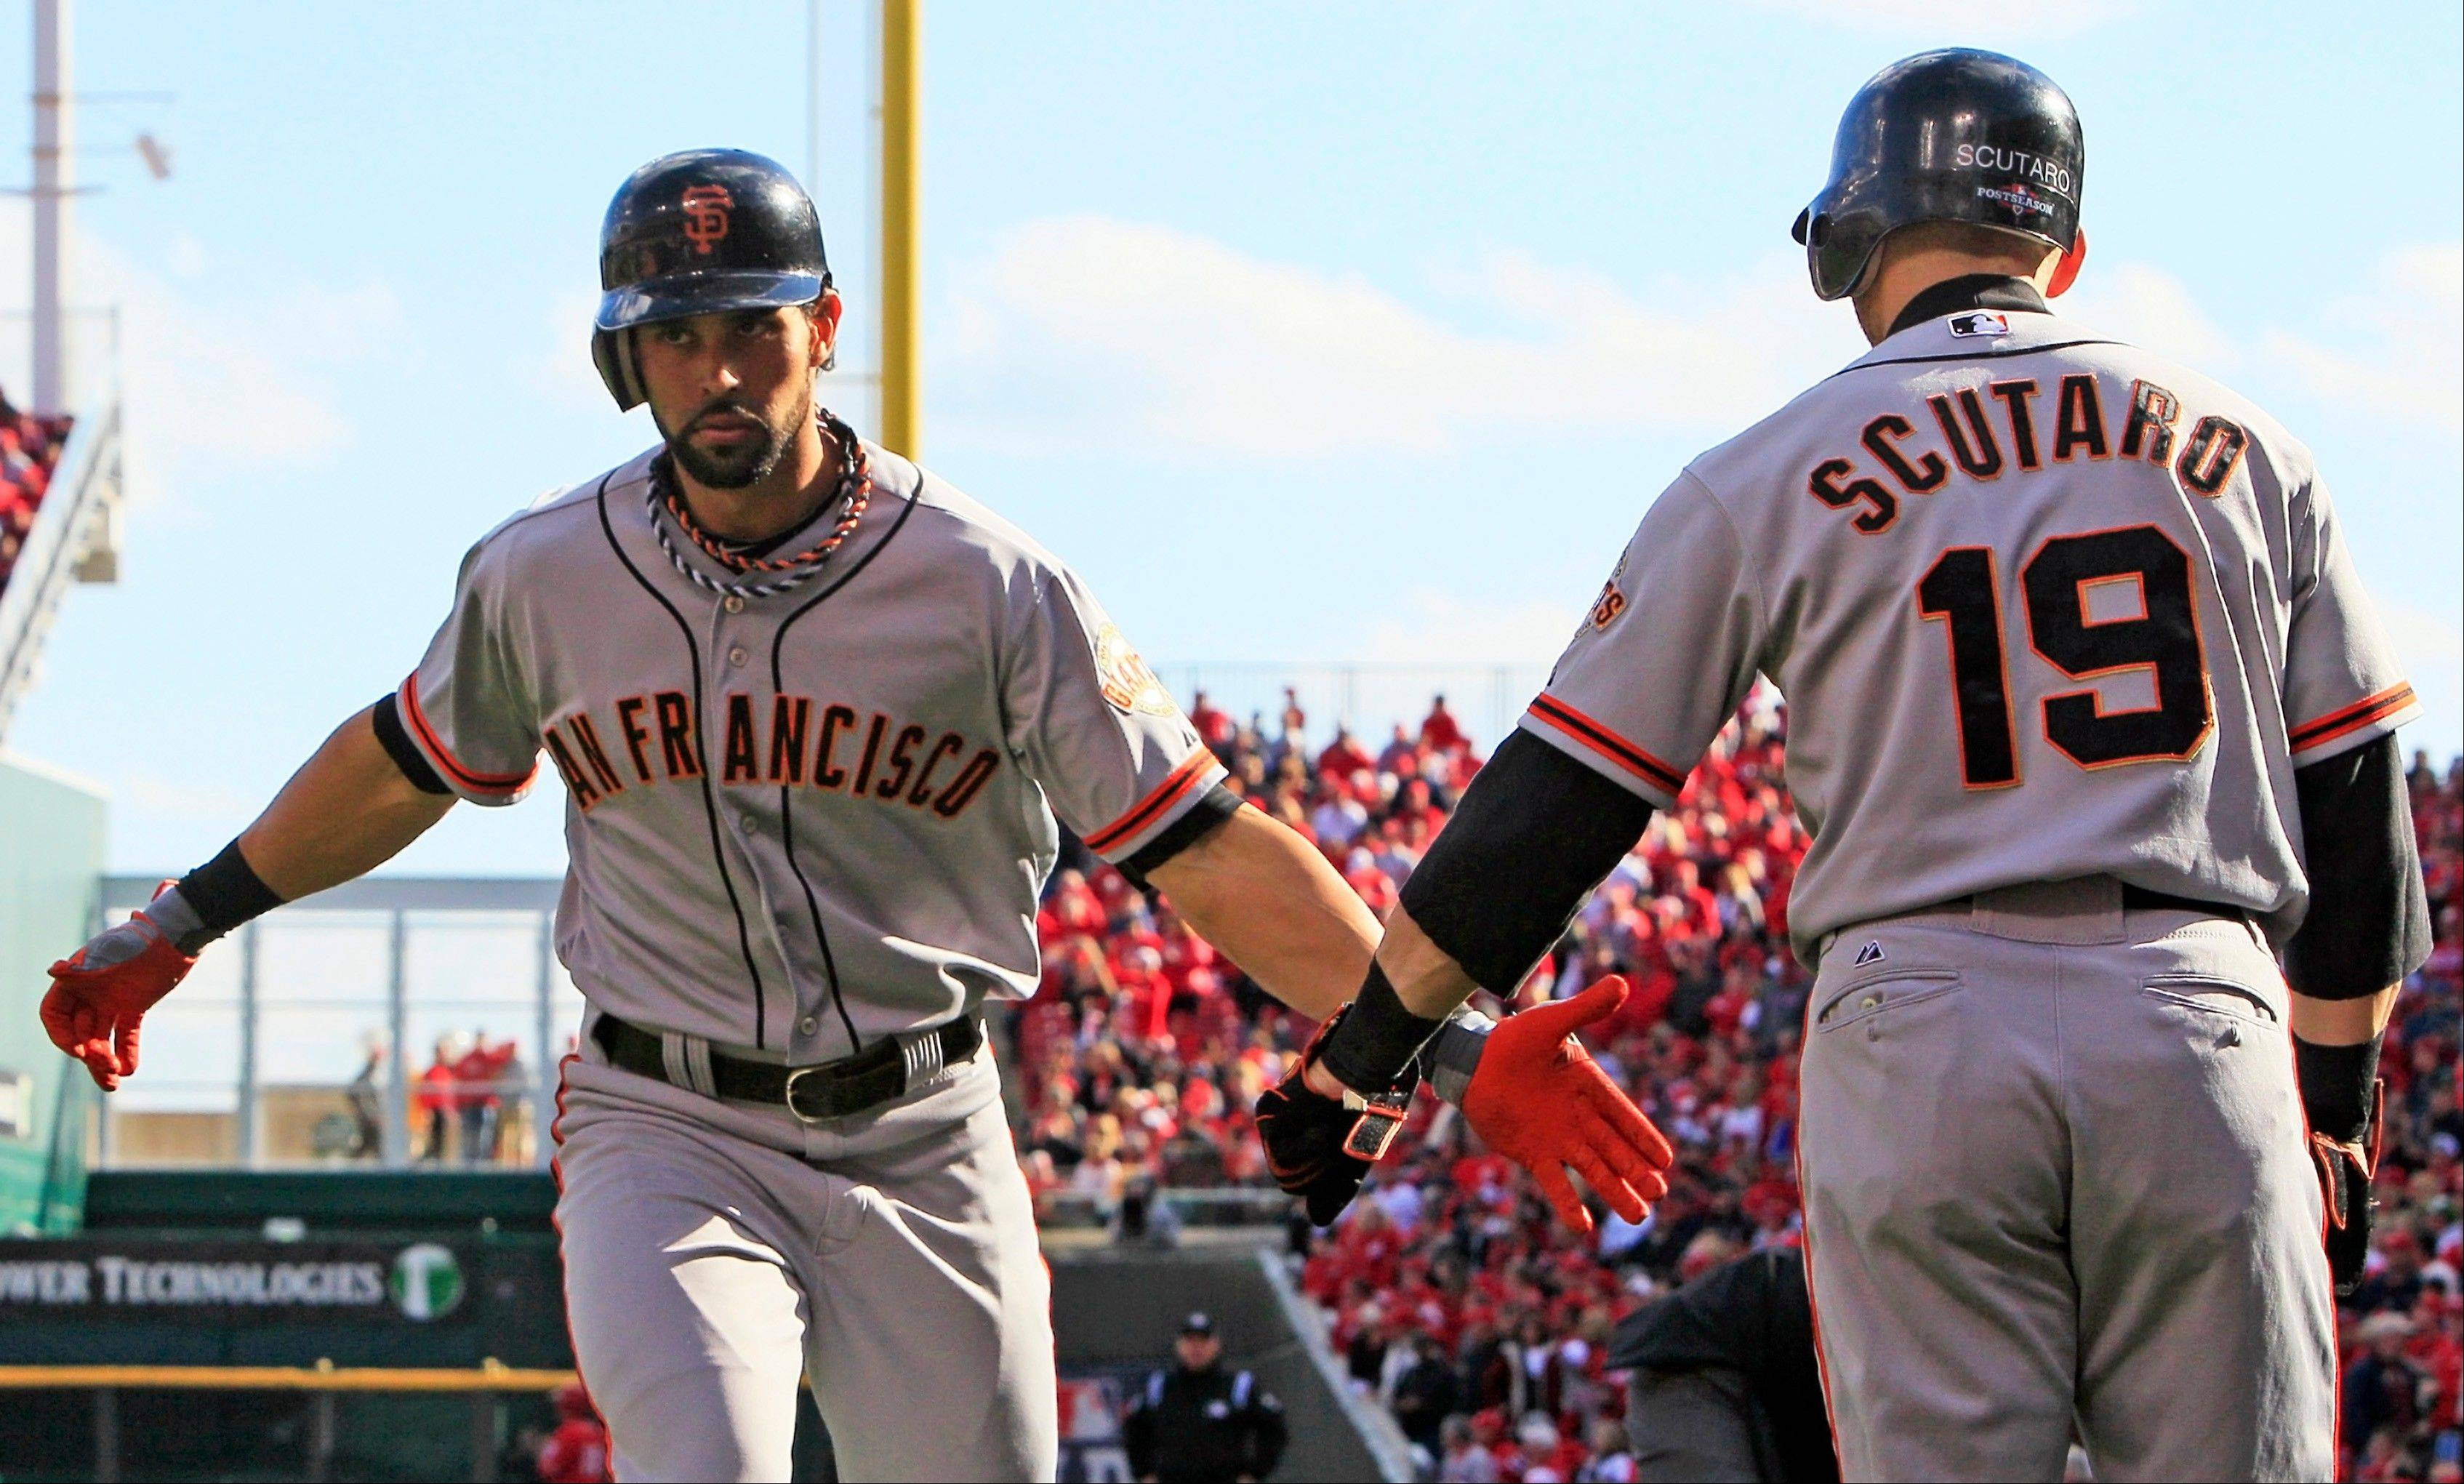 The San Francisco Giants' Angel Pagan is congratulated by Marco Scutaro (19) after Pagan hit a solo home run in the first inning of Game 4 of the National League division baseball series against the Cincinnati Reds on Wednesday in Cincinnati.